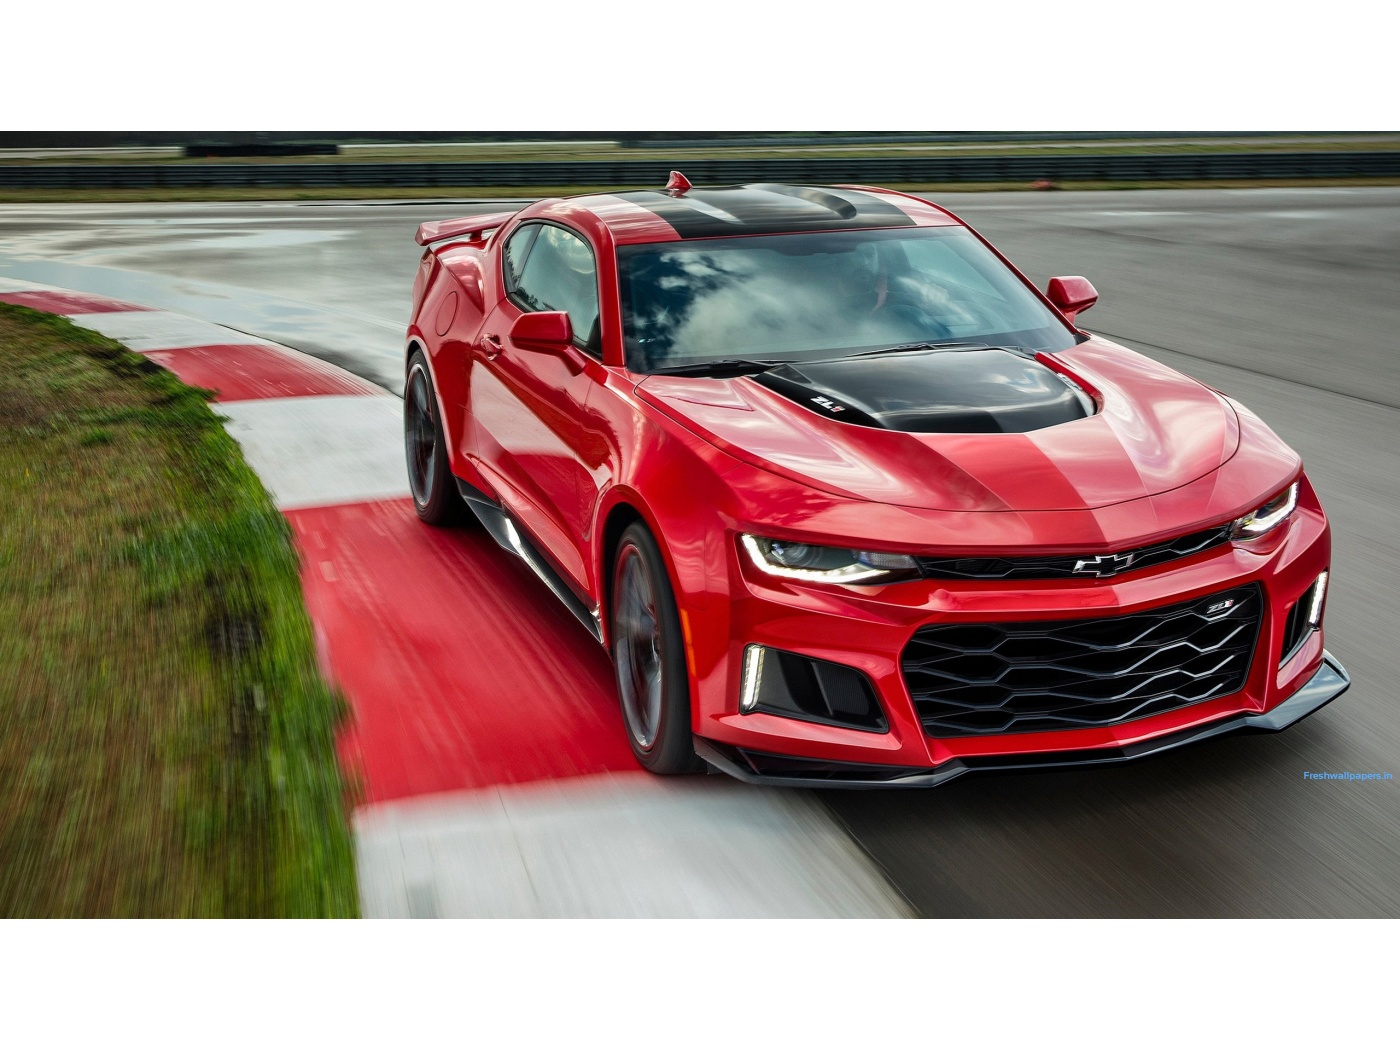 2017 Chevrolet Camaro ZL1 wallpapers 1400x1050